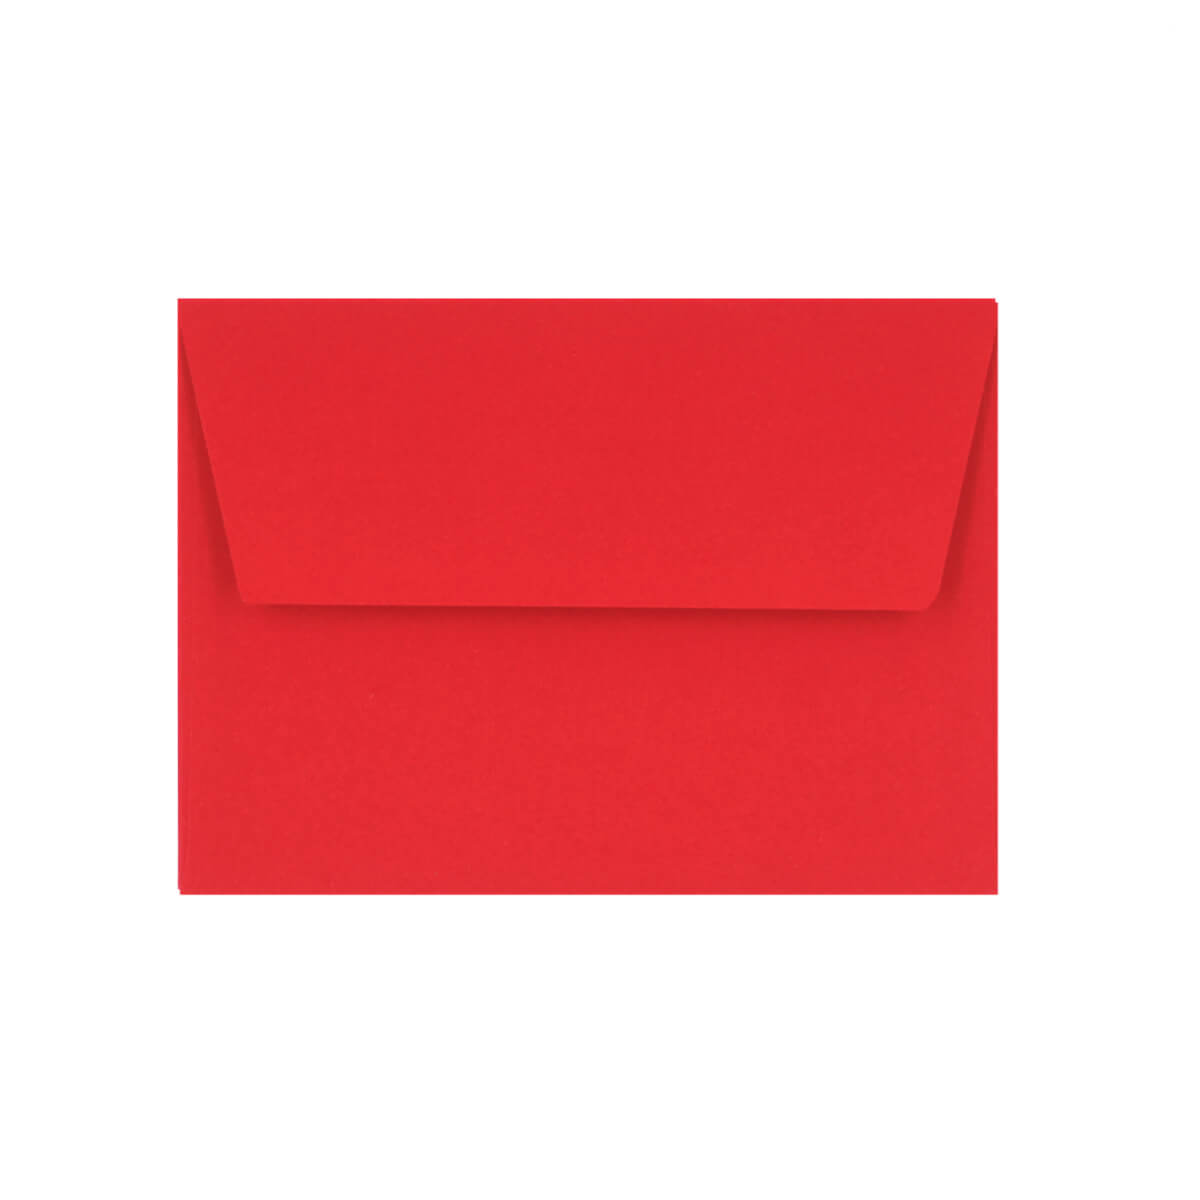 C7 BRIGHT RED PEEL AND SEAL ENVELOPES 120GSM